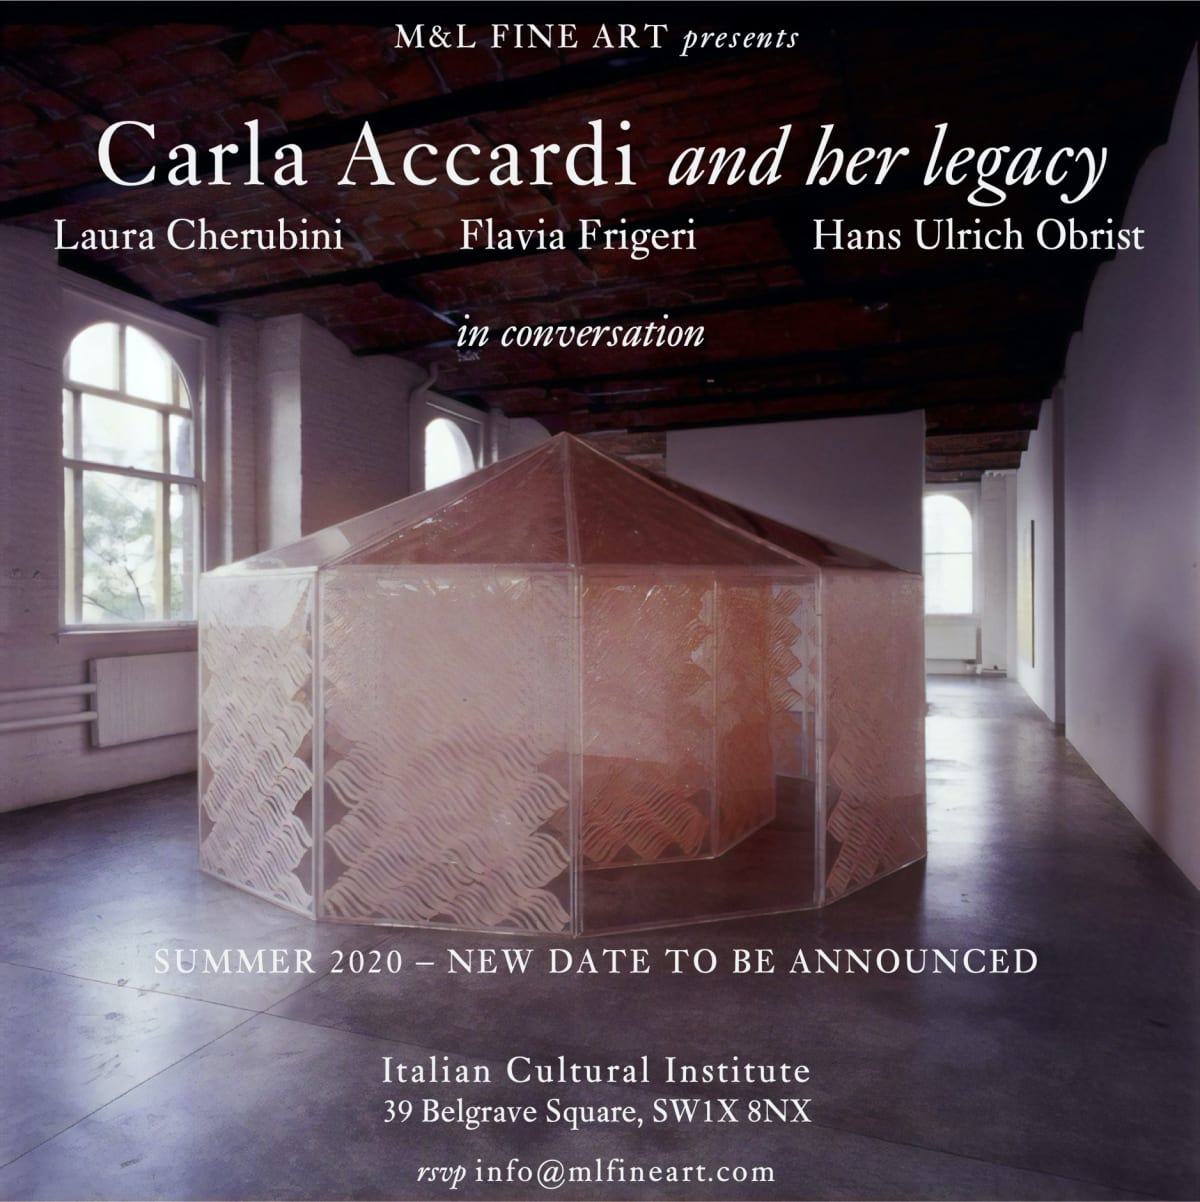 Carla Accardi and her legacy